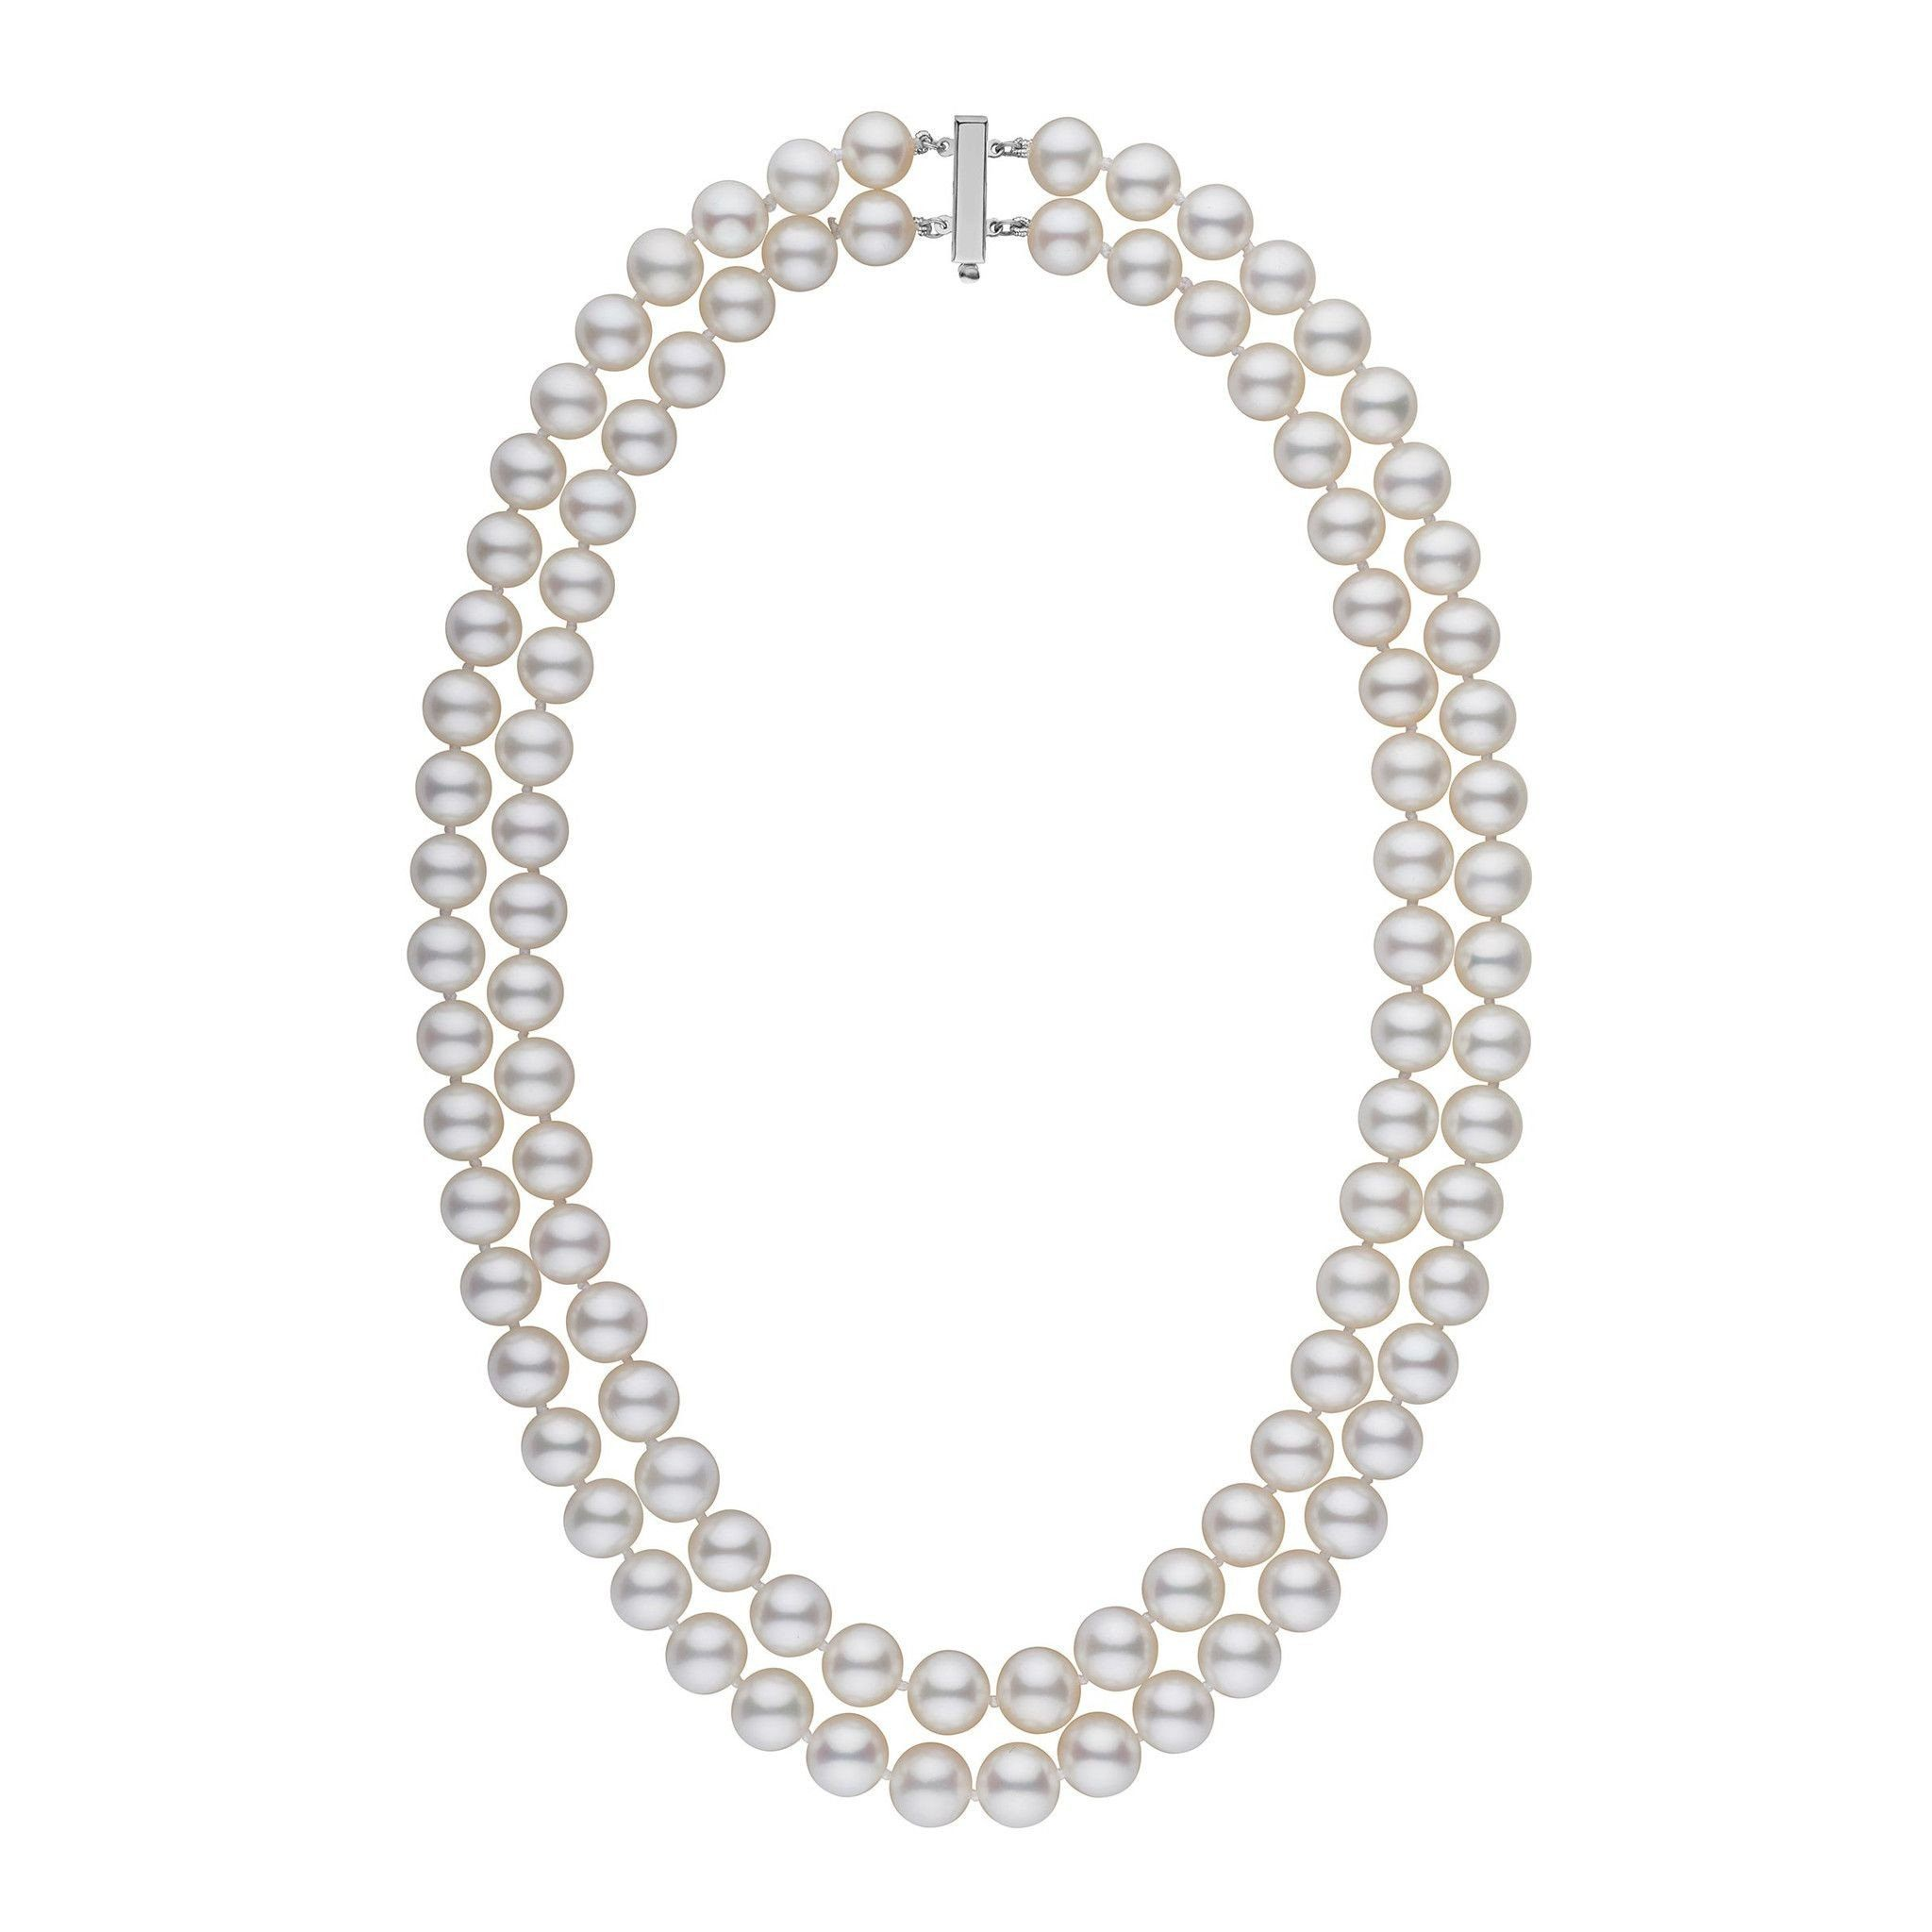 8.5-9.0 mm AAA Double Strand White Freshwater Pearl Necklace